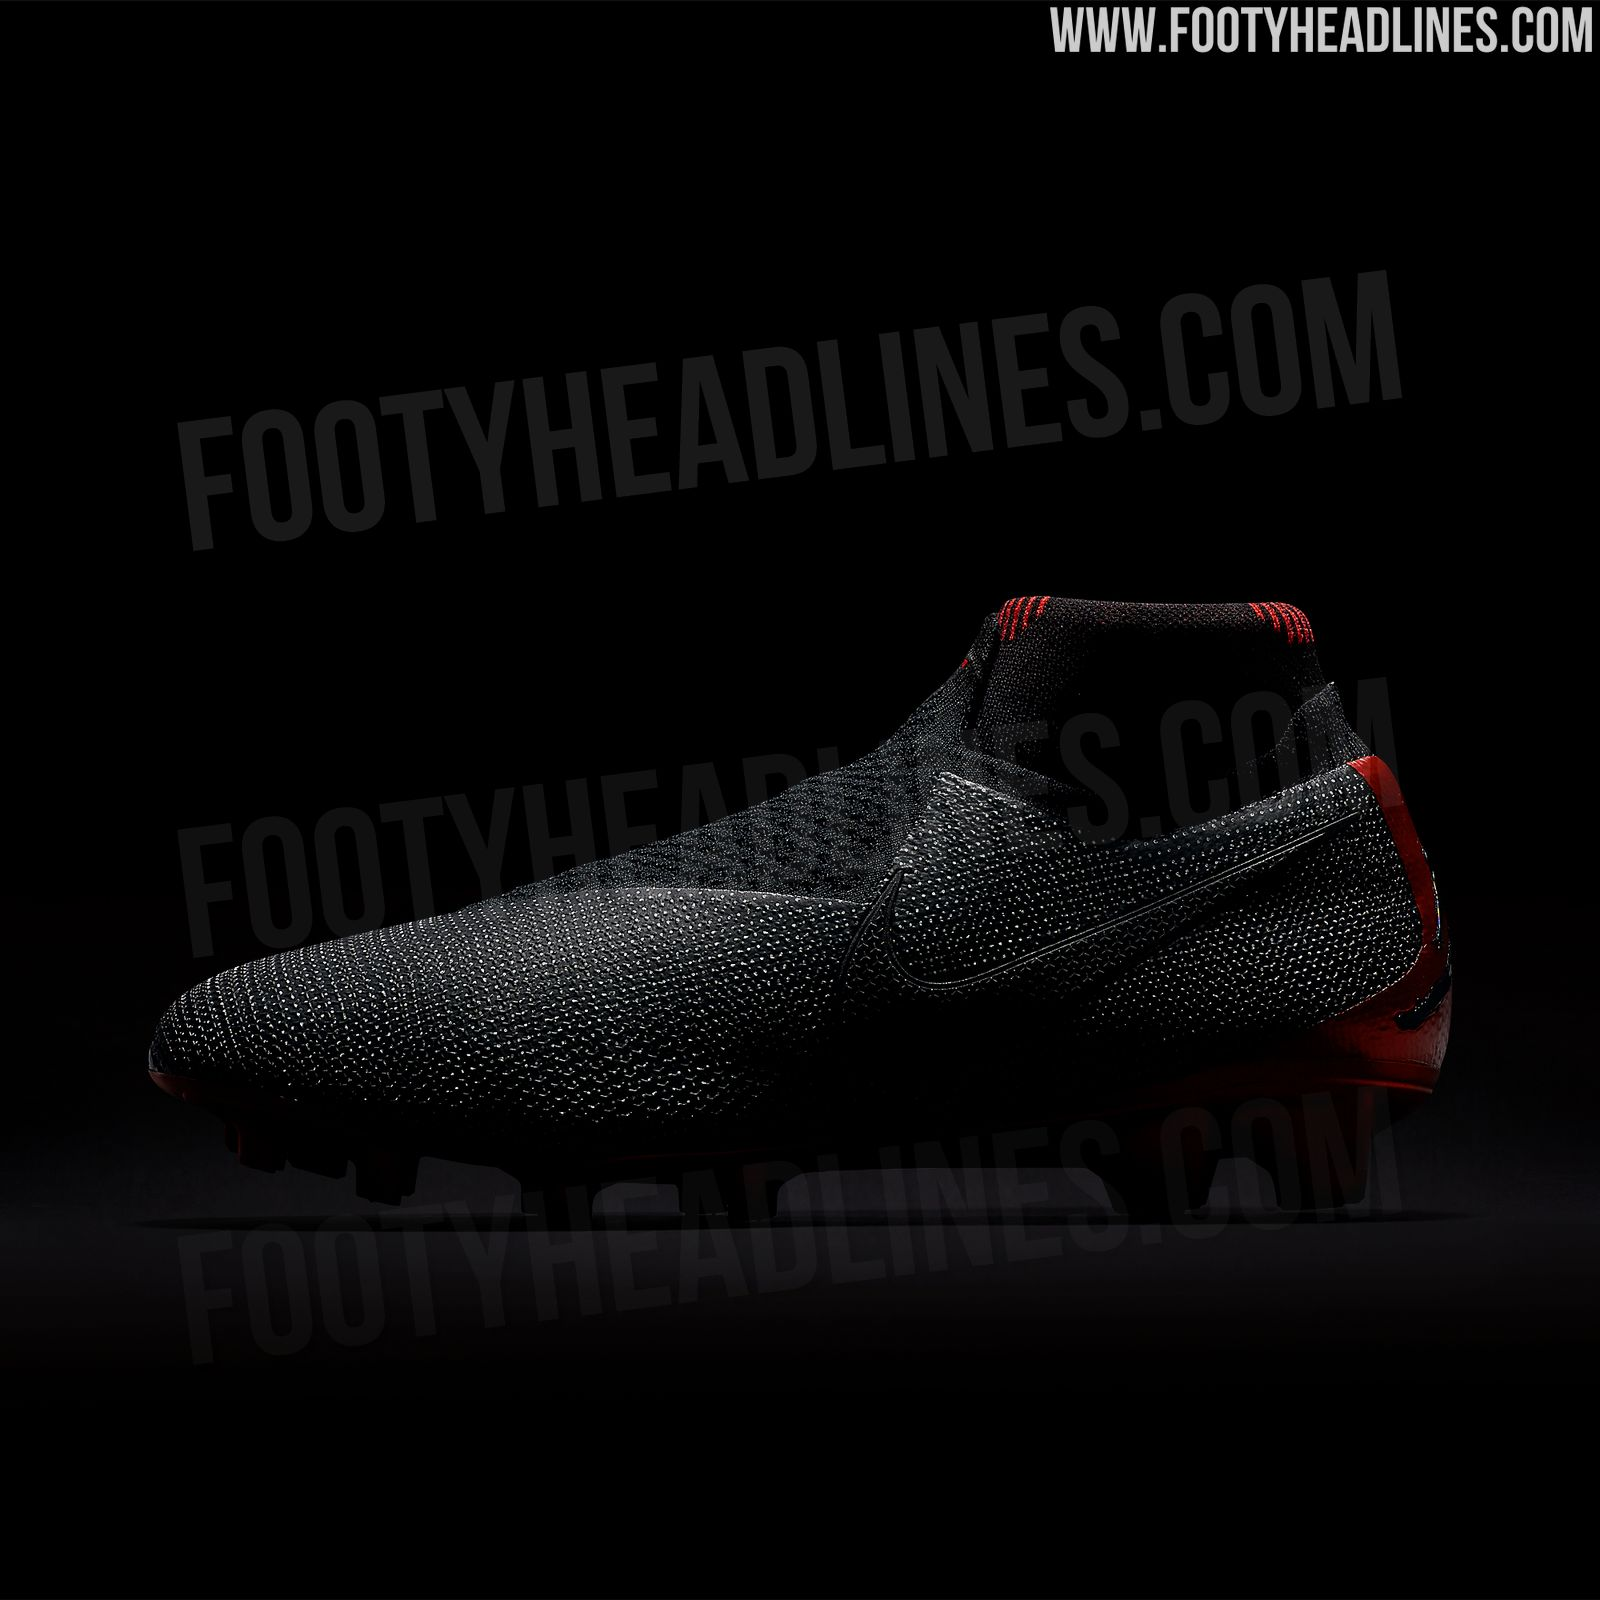 1787a43f7 BREAKING: 9 official pictures of the Nike x Jordan x PSG Phantom Vision  boots have leaked ahead of the launch on September 13, with the rest of the  ...